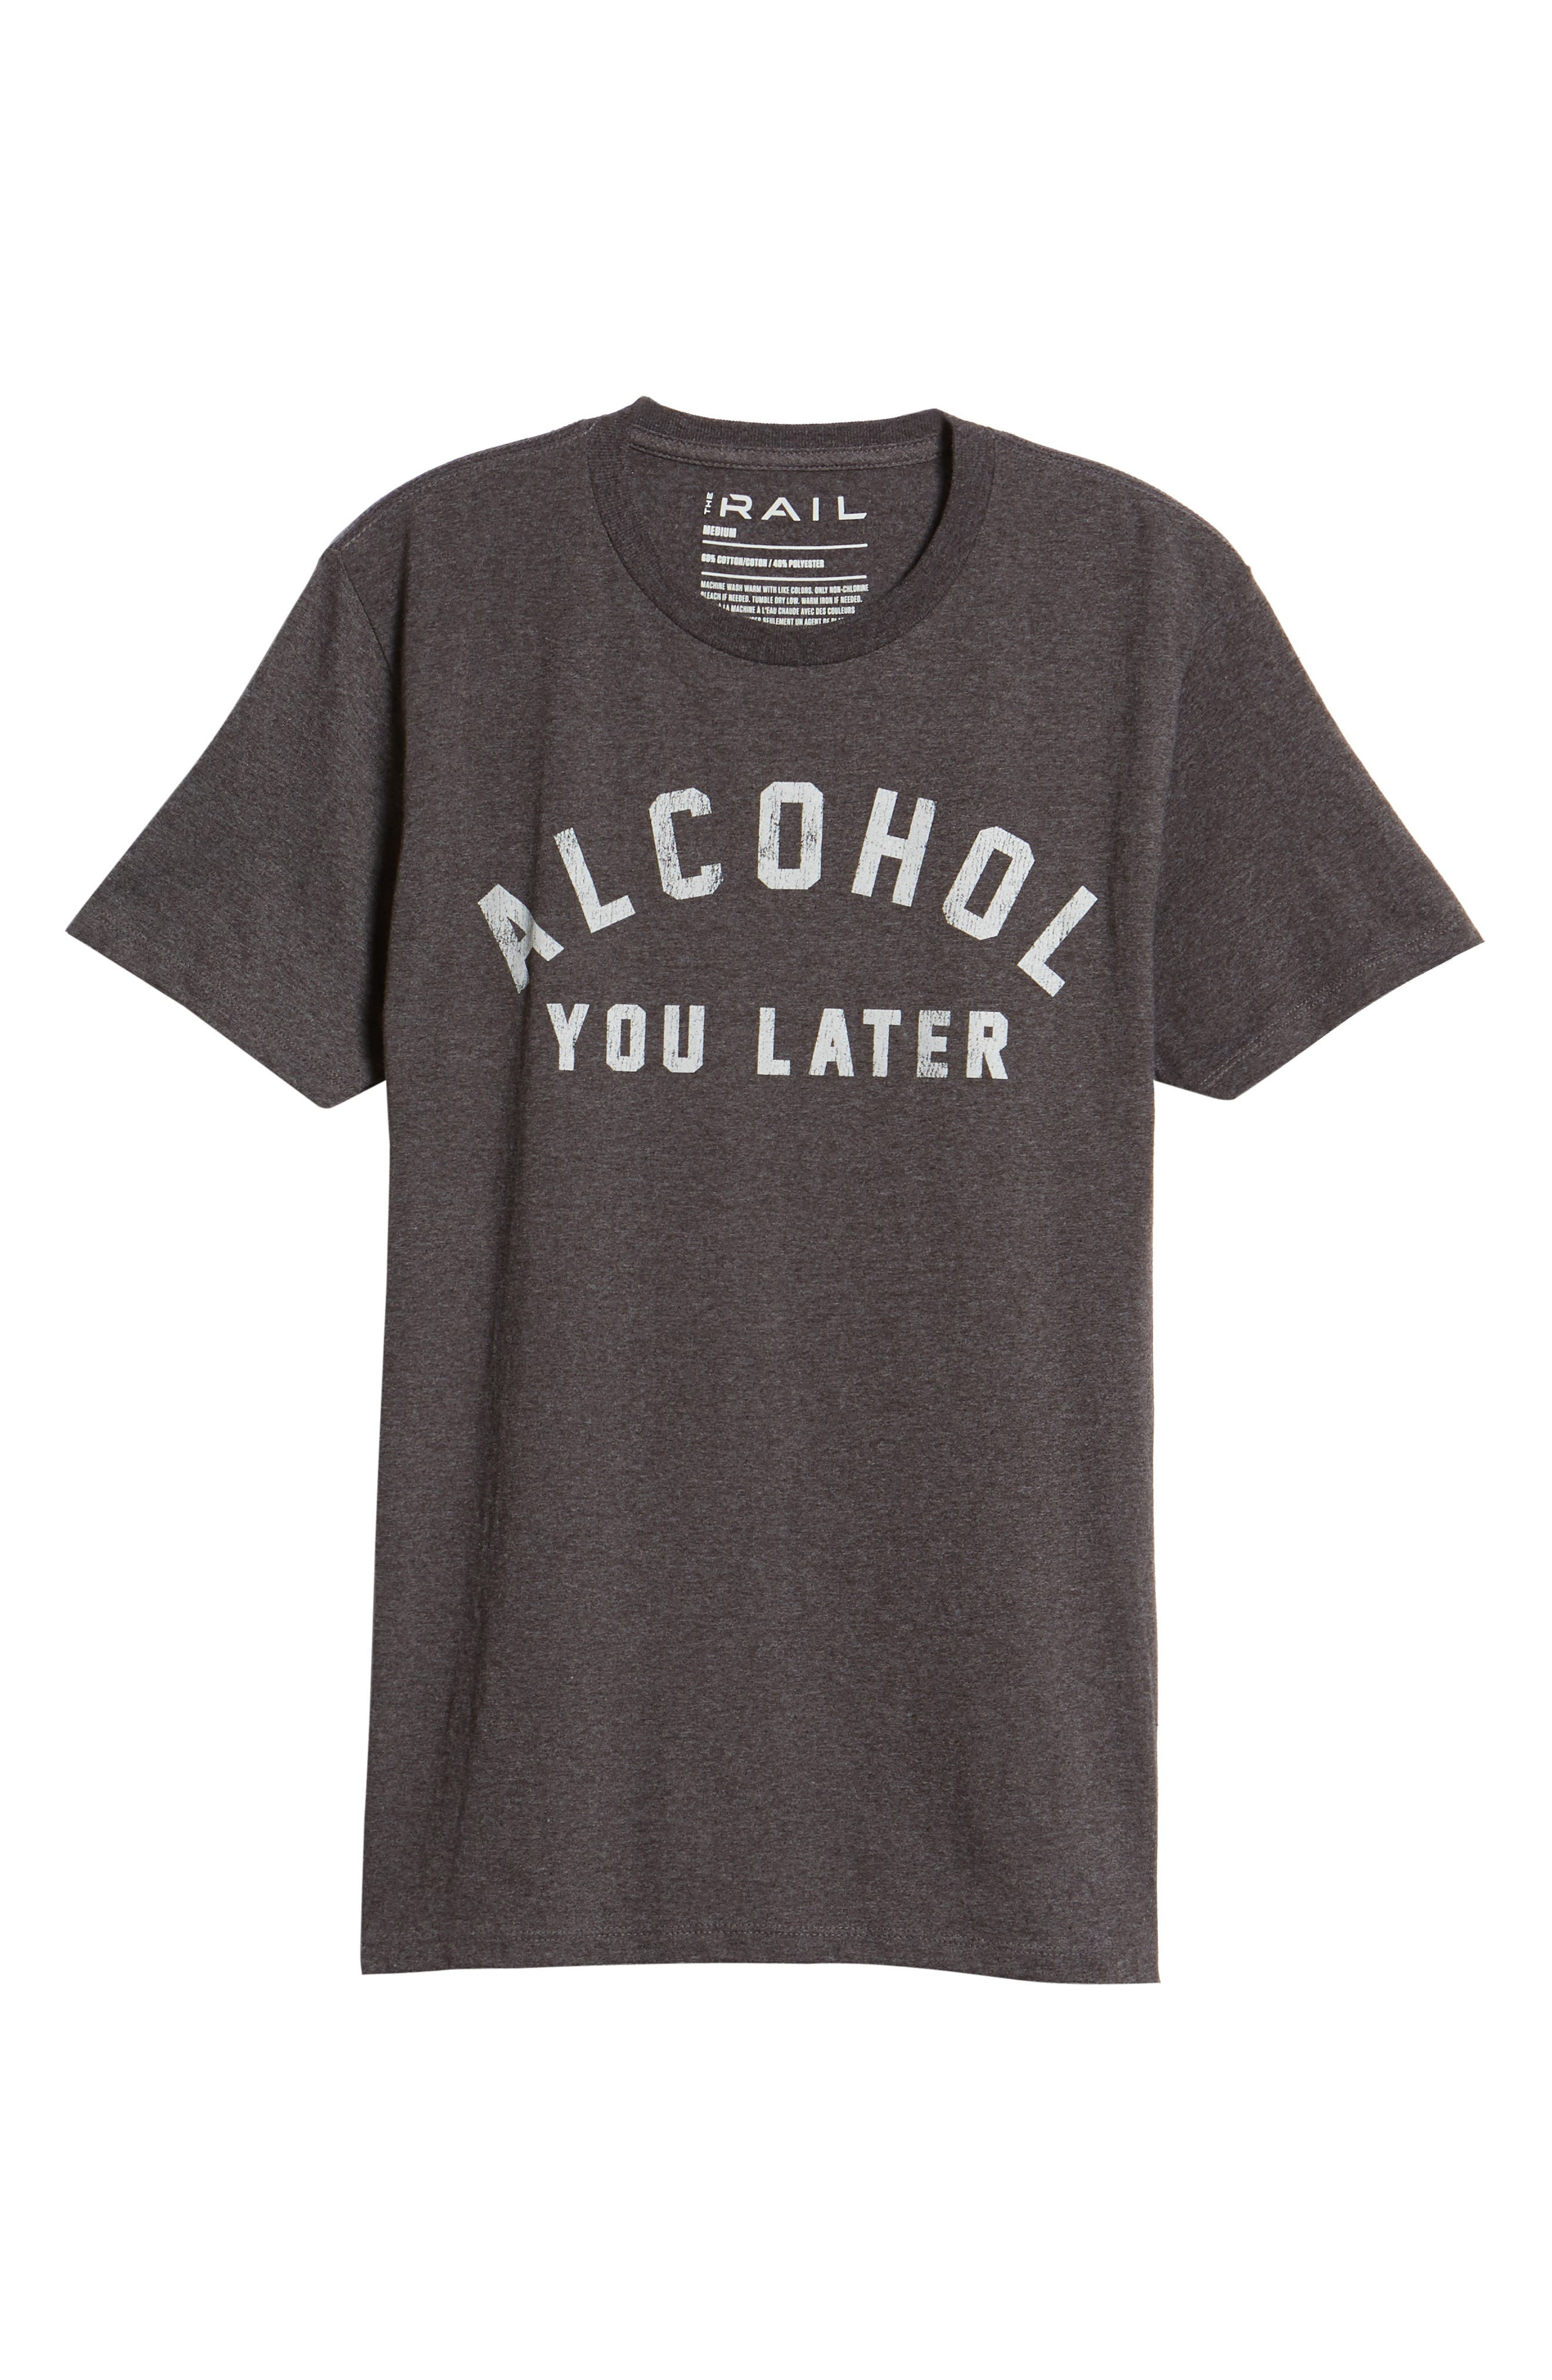 Alcohol You Later T-Shirt,                             Alternate thumbnail 6, color,                             Grey Charcoal Heather Alcohol